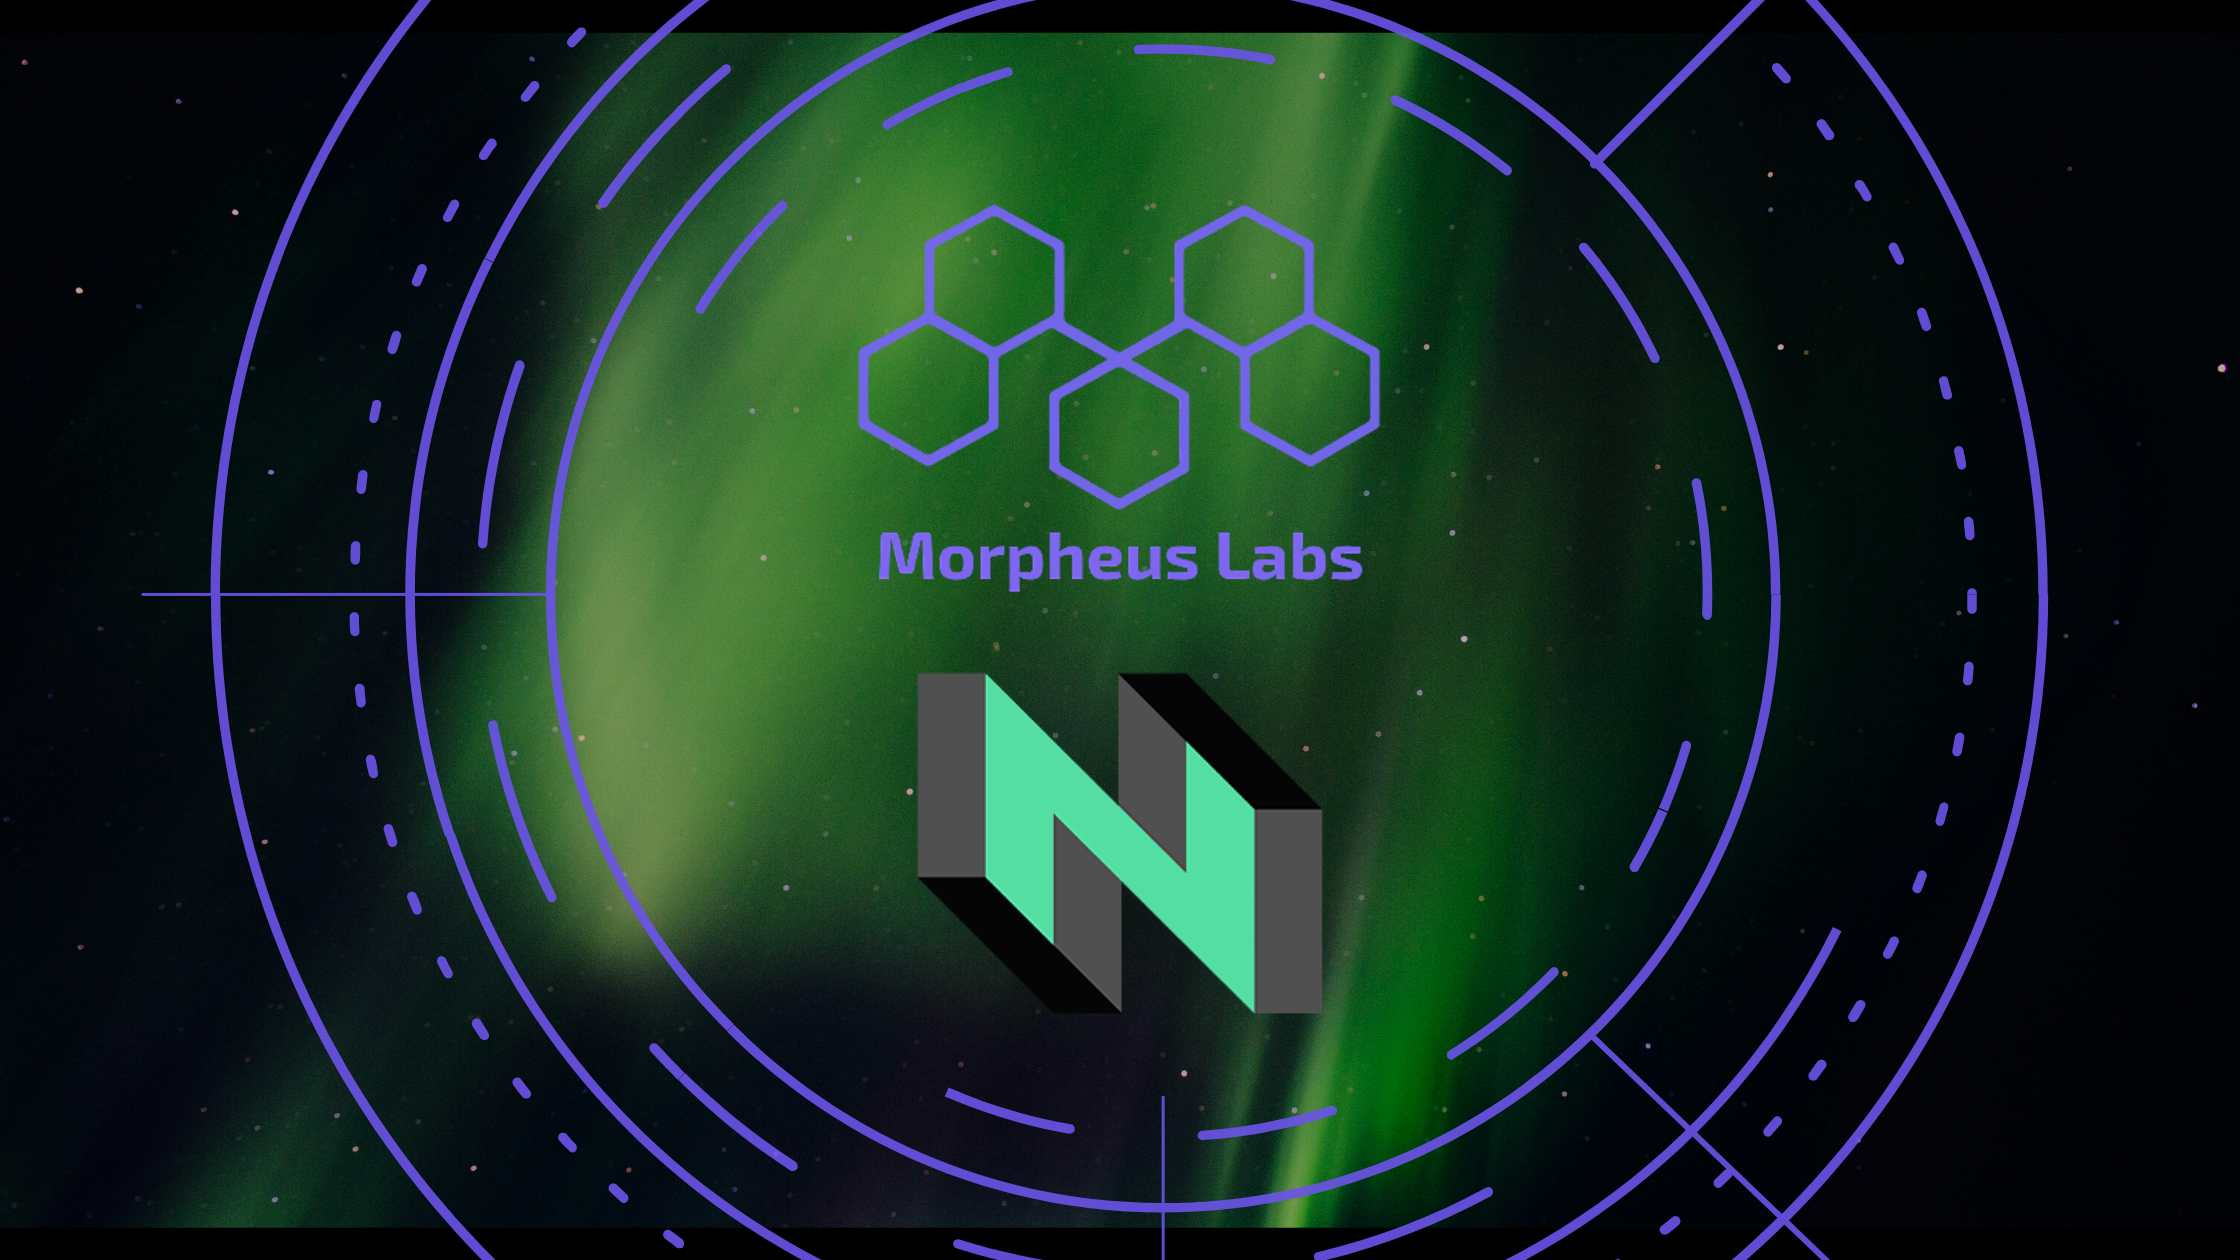 Morpheus Labs Partners with Nervos Network to Work on Enterprise-Based Blockchain Solution in SE Asia